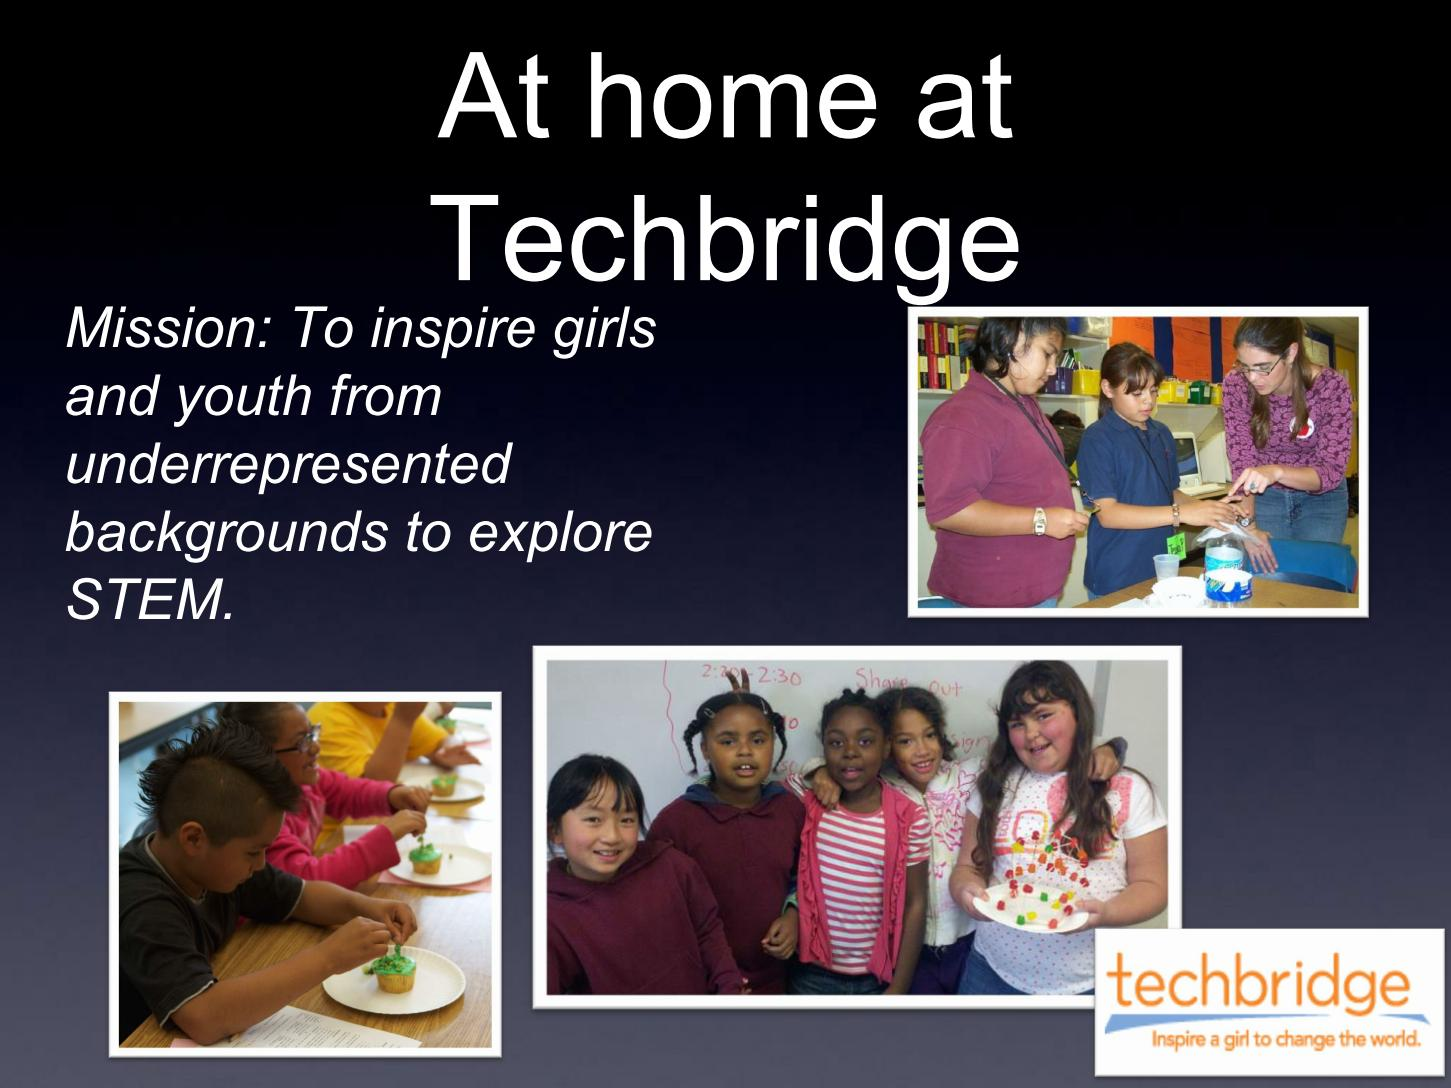 At home at Techbridge